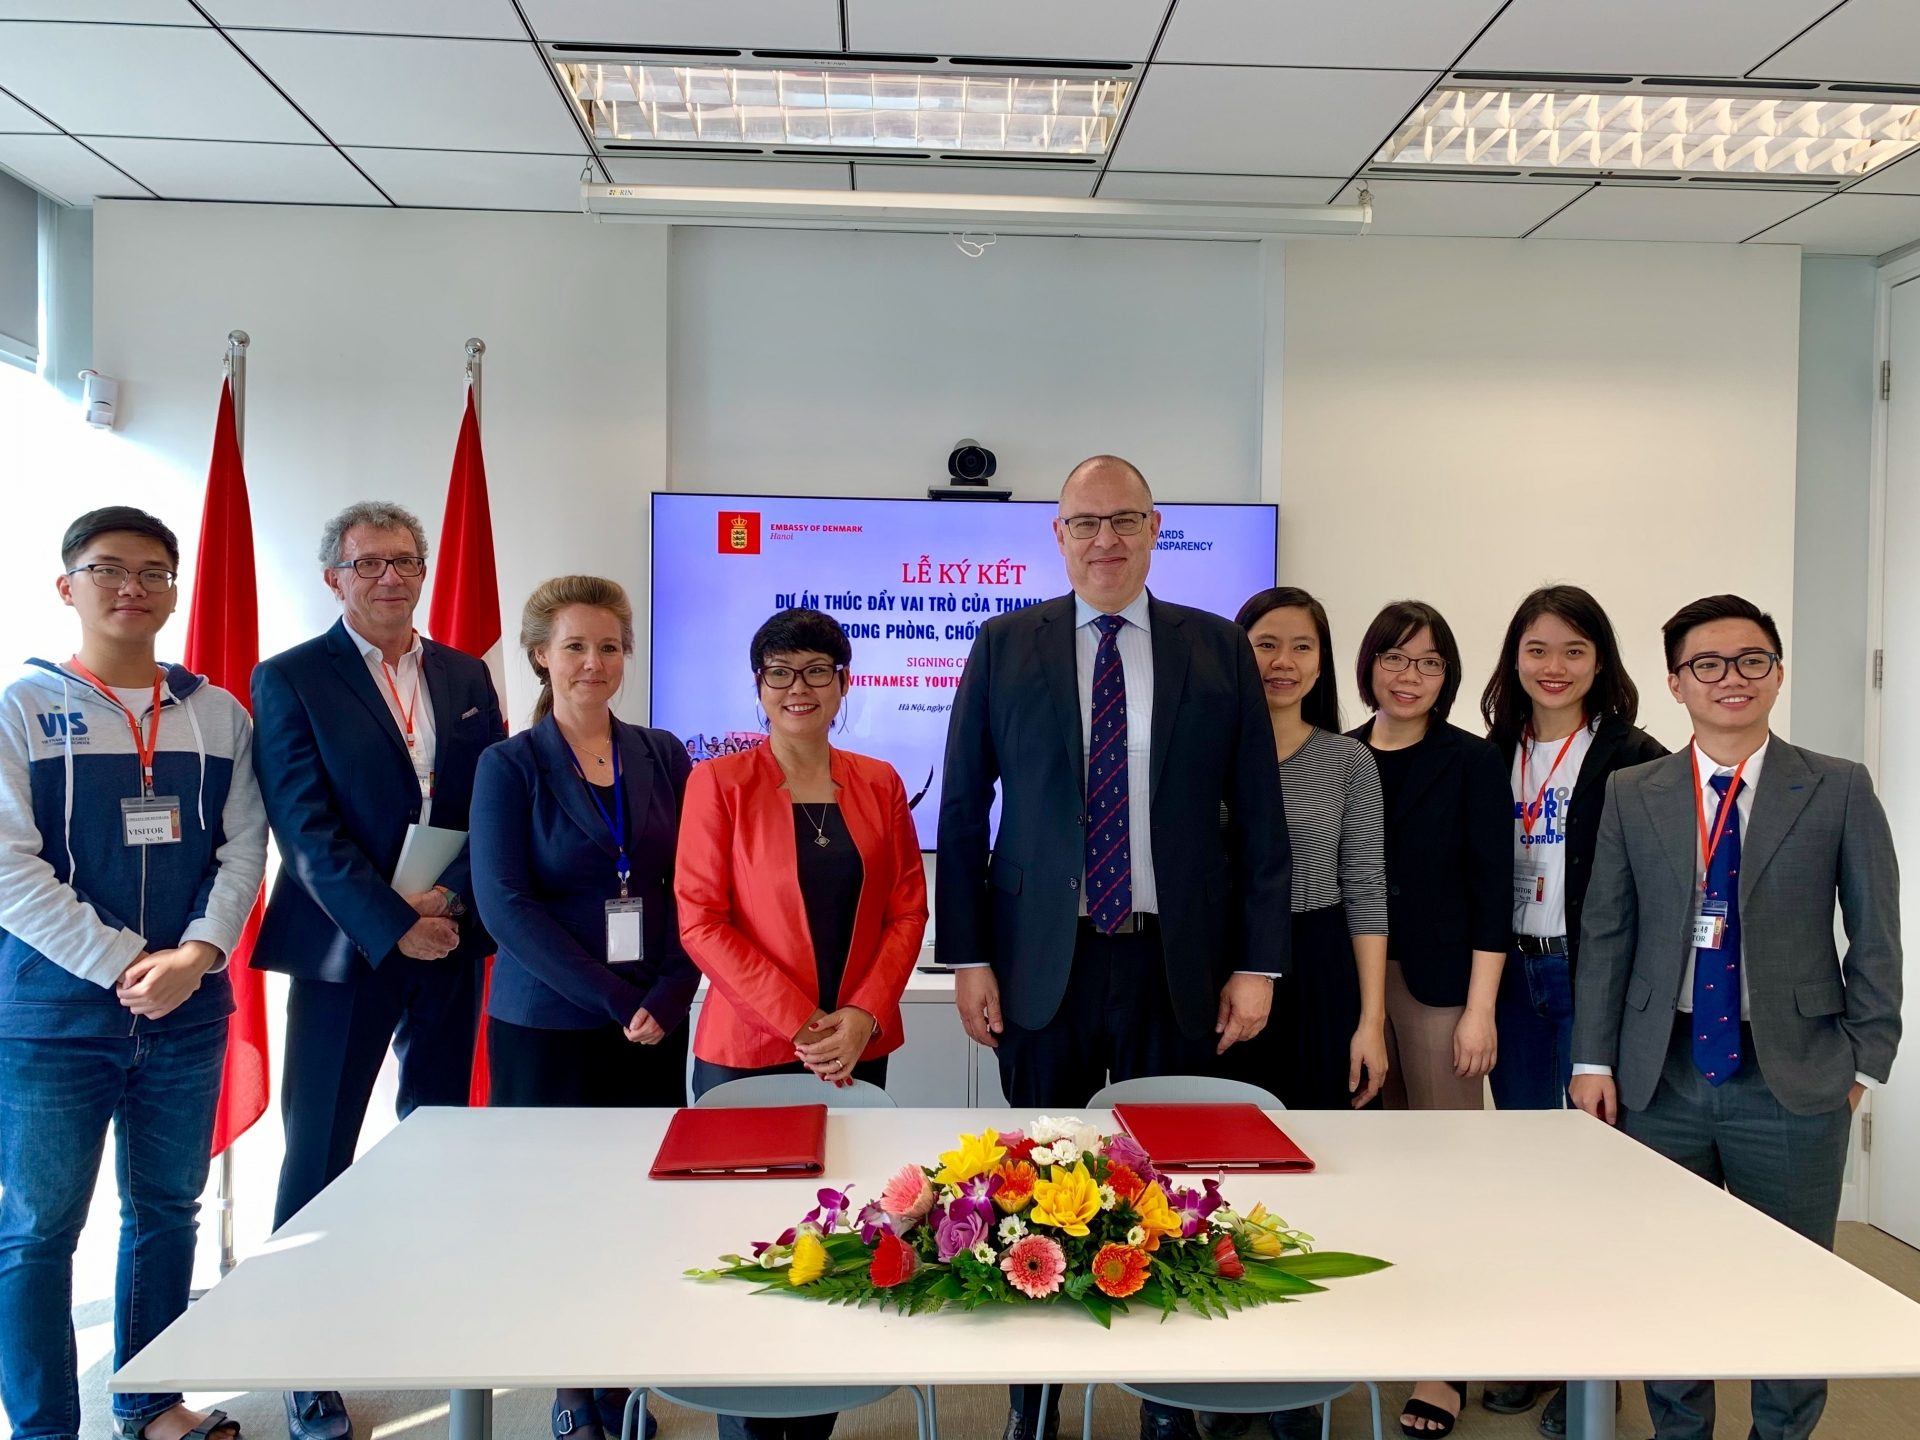 Denmark supports improving integrity education  for Vietnamese youth